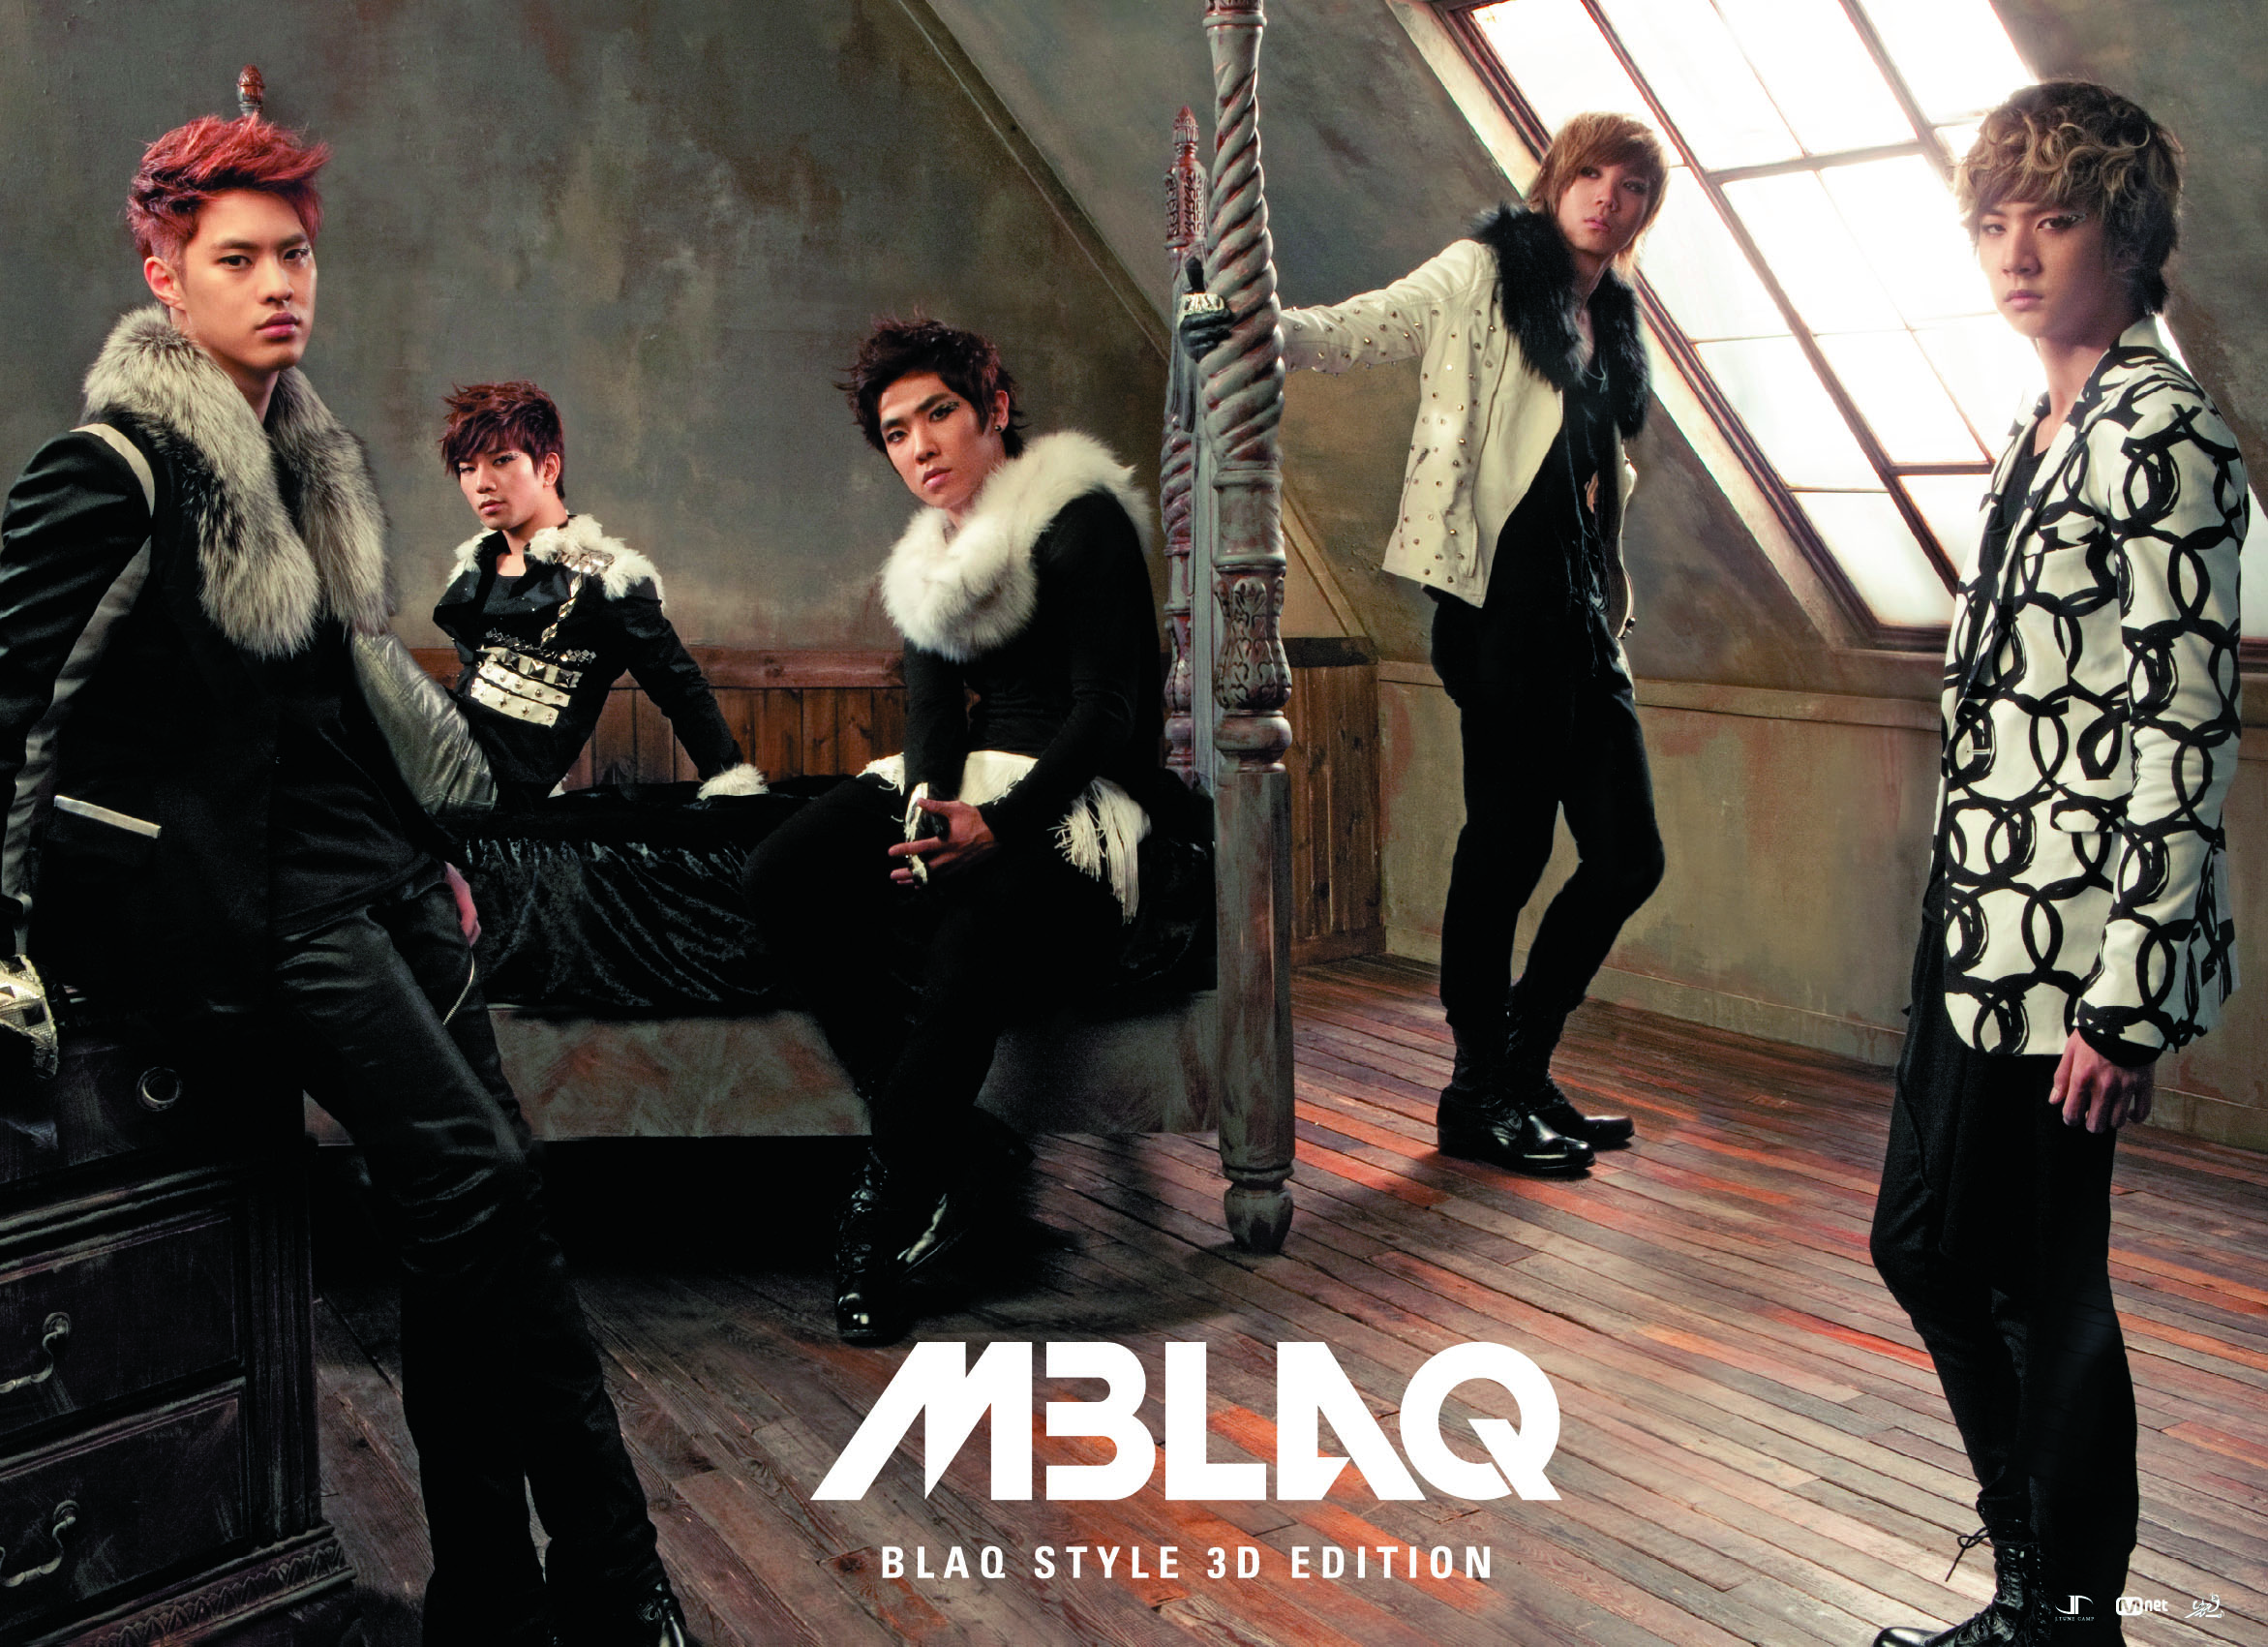 mblaq dating style [nb] mblaq's go is dating actress choi ye seul (yes current mblaq member go has dating news today grats grats to both they're both of age and are healthy.